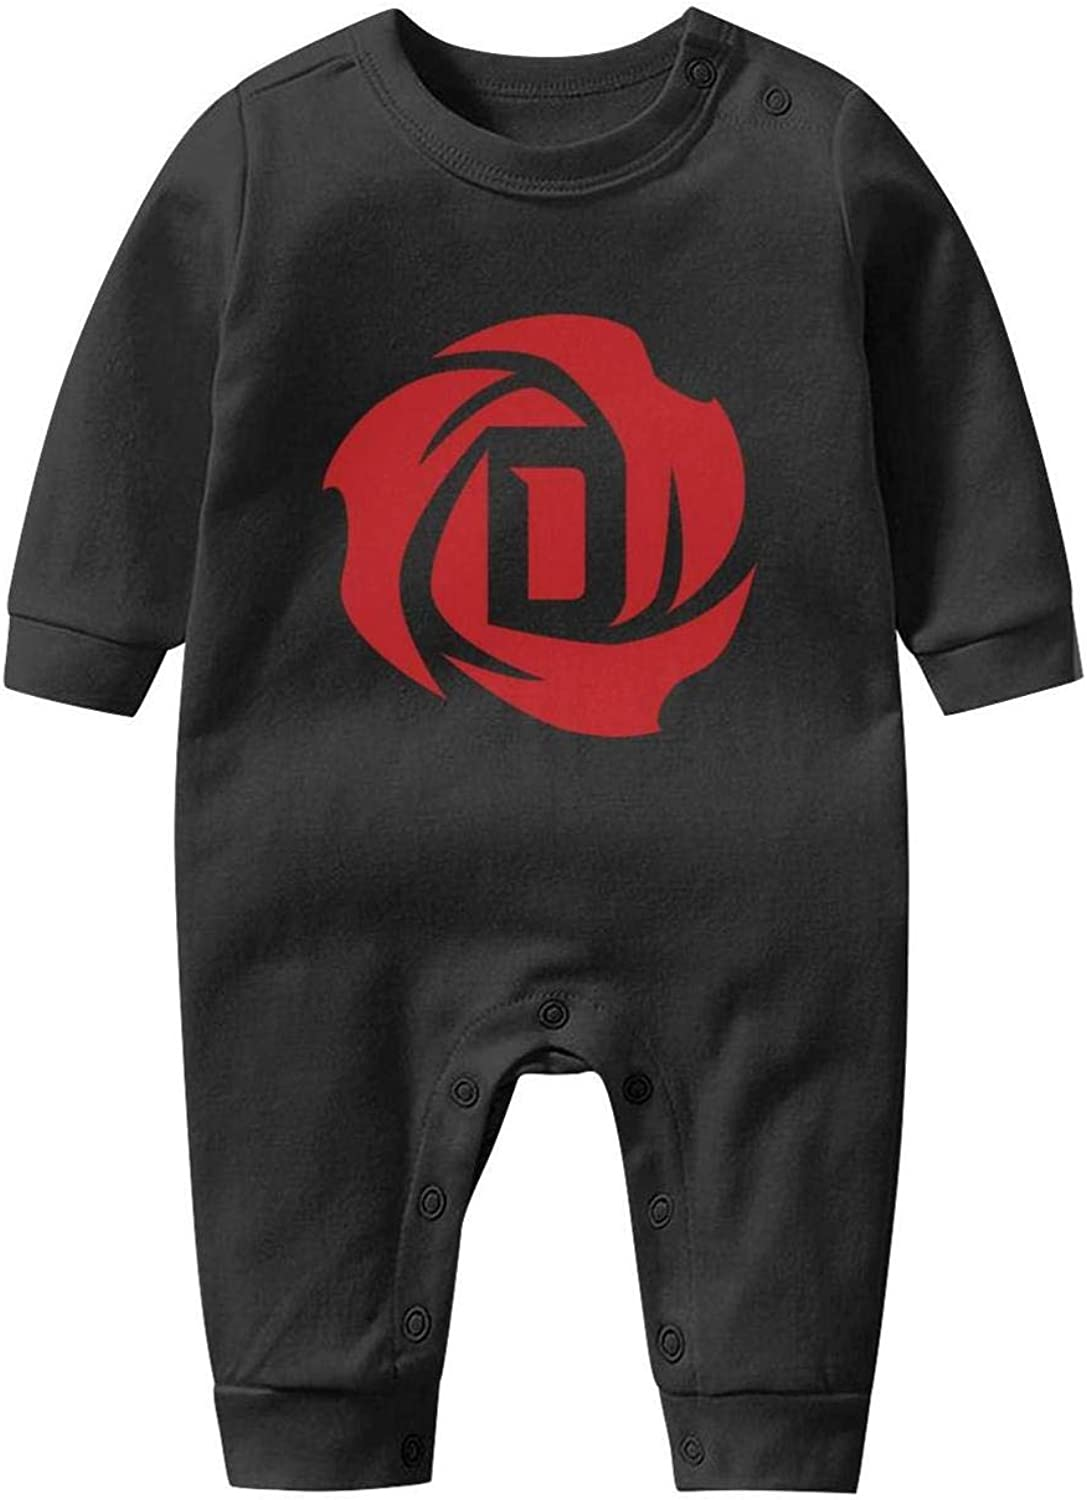 Baby Layette Jumpsuit Onesies Baby Baby Girls Boys Infant Baby Clothes Onesie